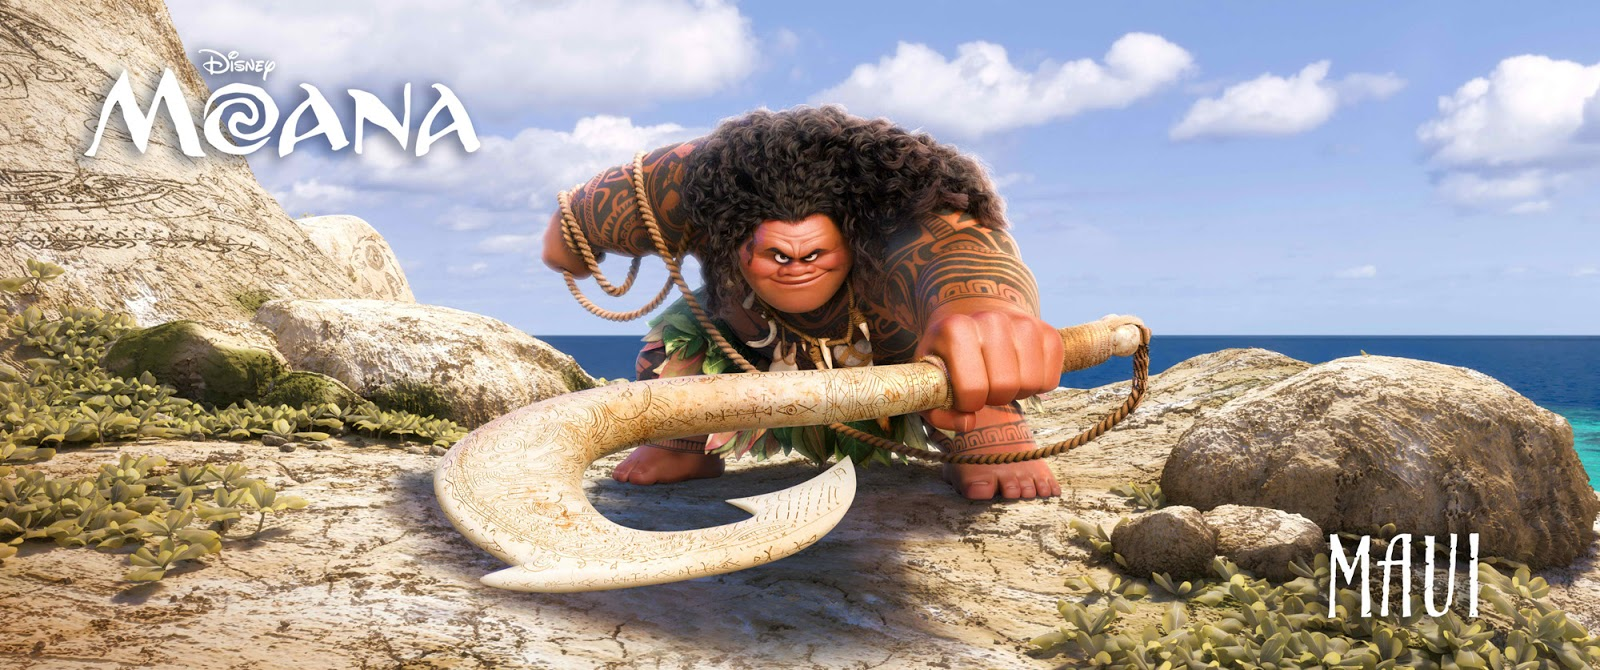 Meet The Charcaters Of Moana Bettina Heels Belka Black Hitam 39 Walt Disney Animation Studios Which Opens In Theaters Across Philippines On Nov 30 2016 Features A Dynamic Roster Characters Brought To